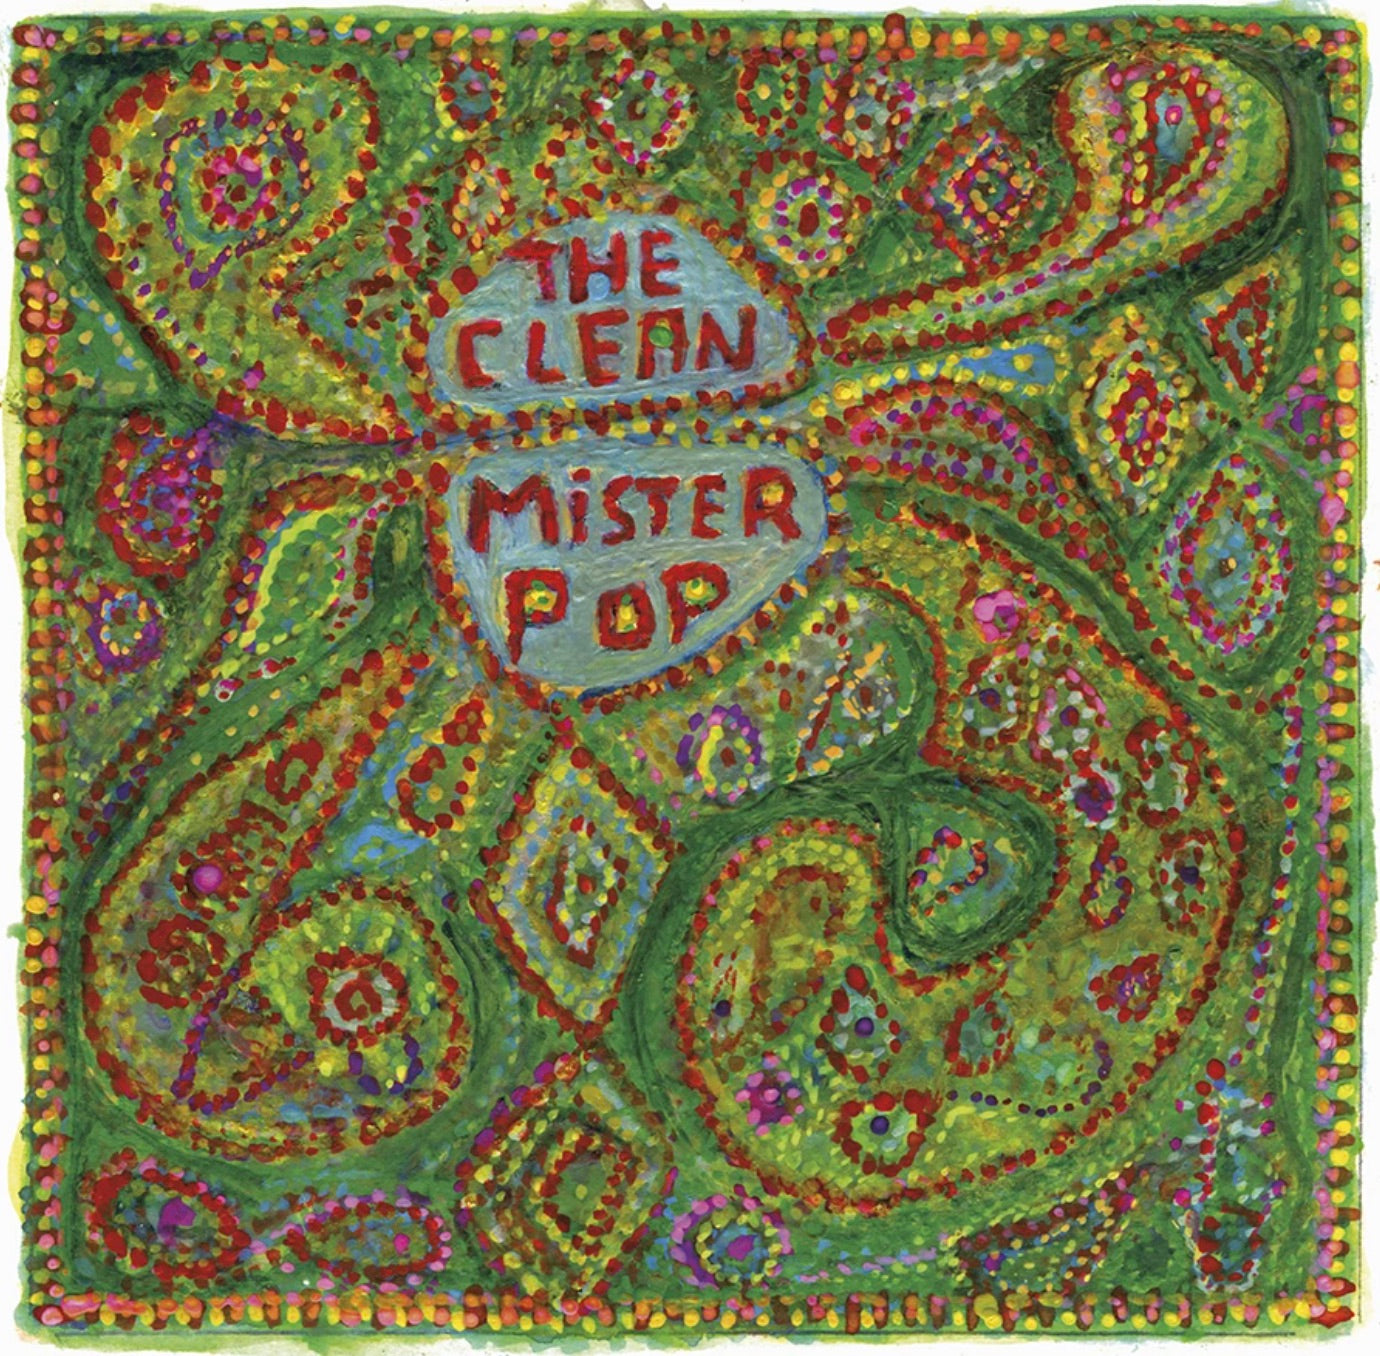 Clean, The - Mister Pop (2009/2021)(Reissue)